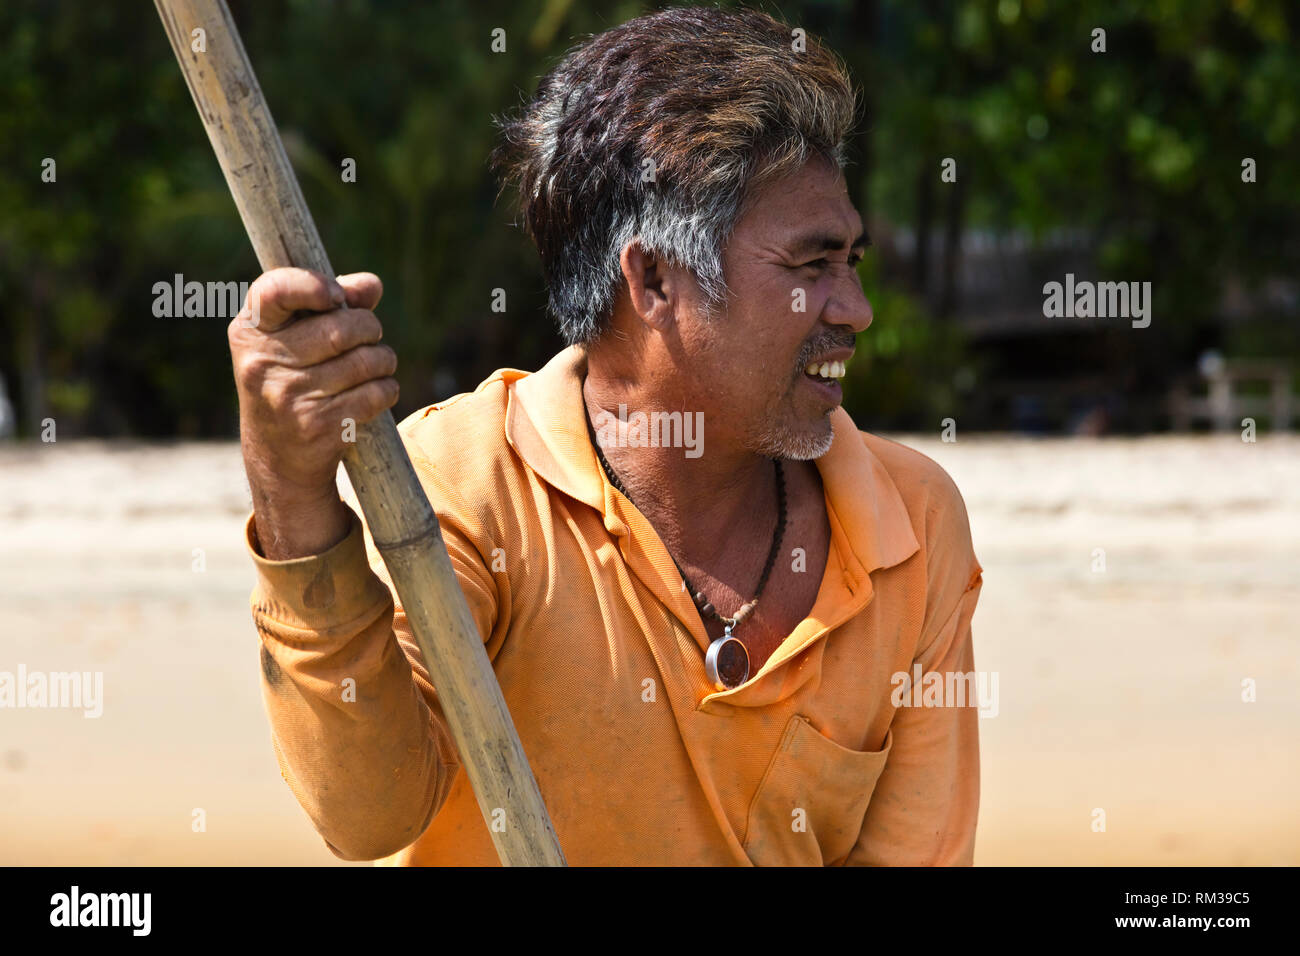 A MOKEN MAN on his traditional boat to KHO RA ISLAND in the Andaman Sea - THAILAND - Stock Image